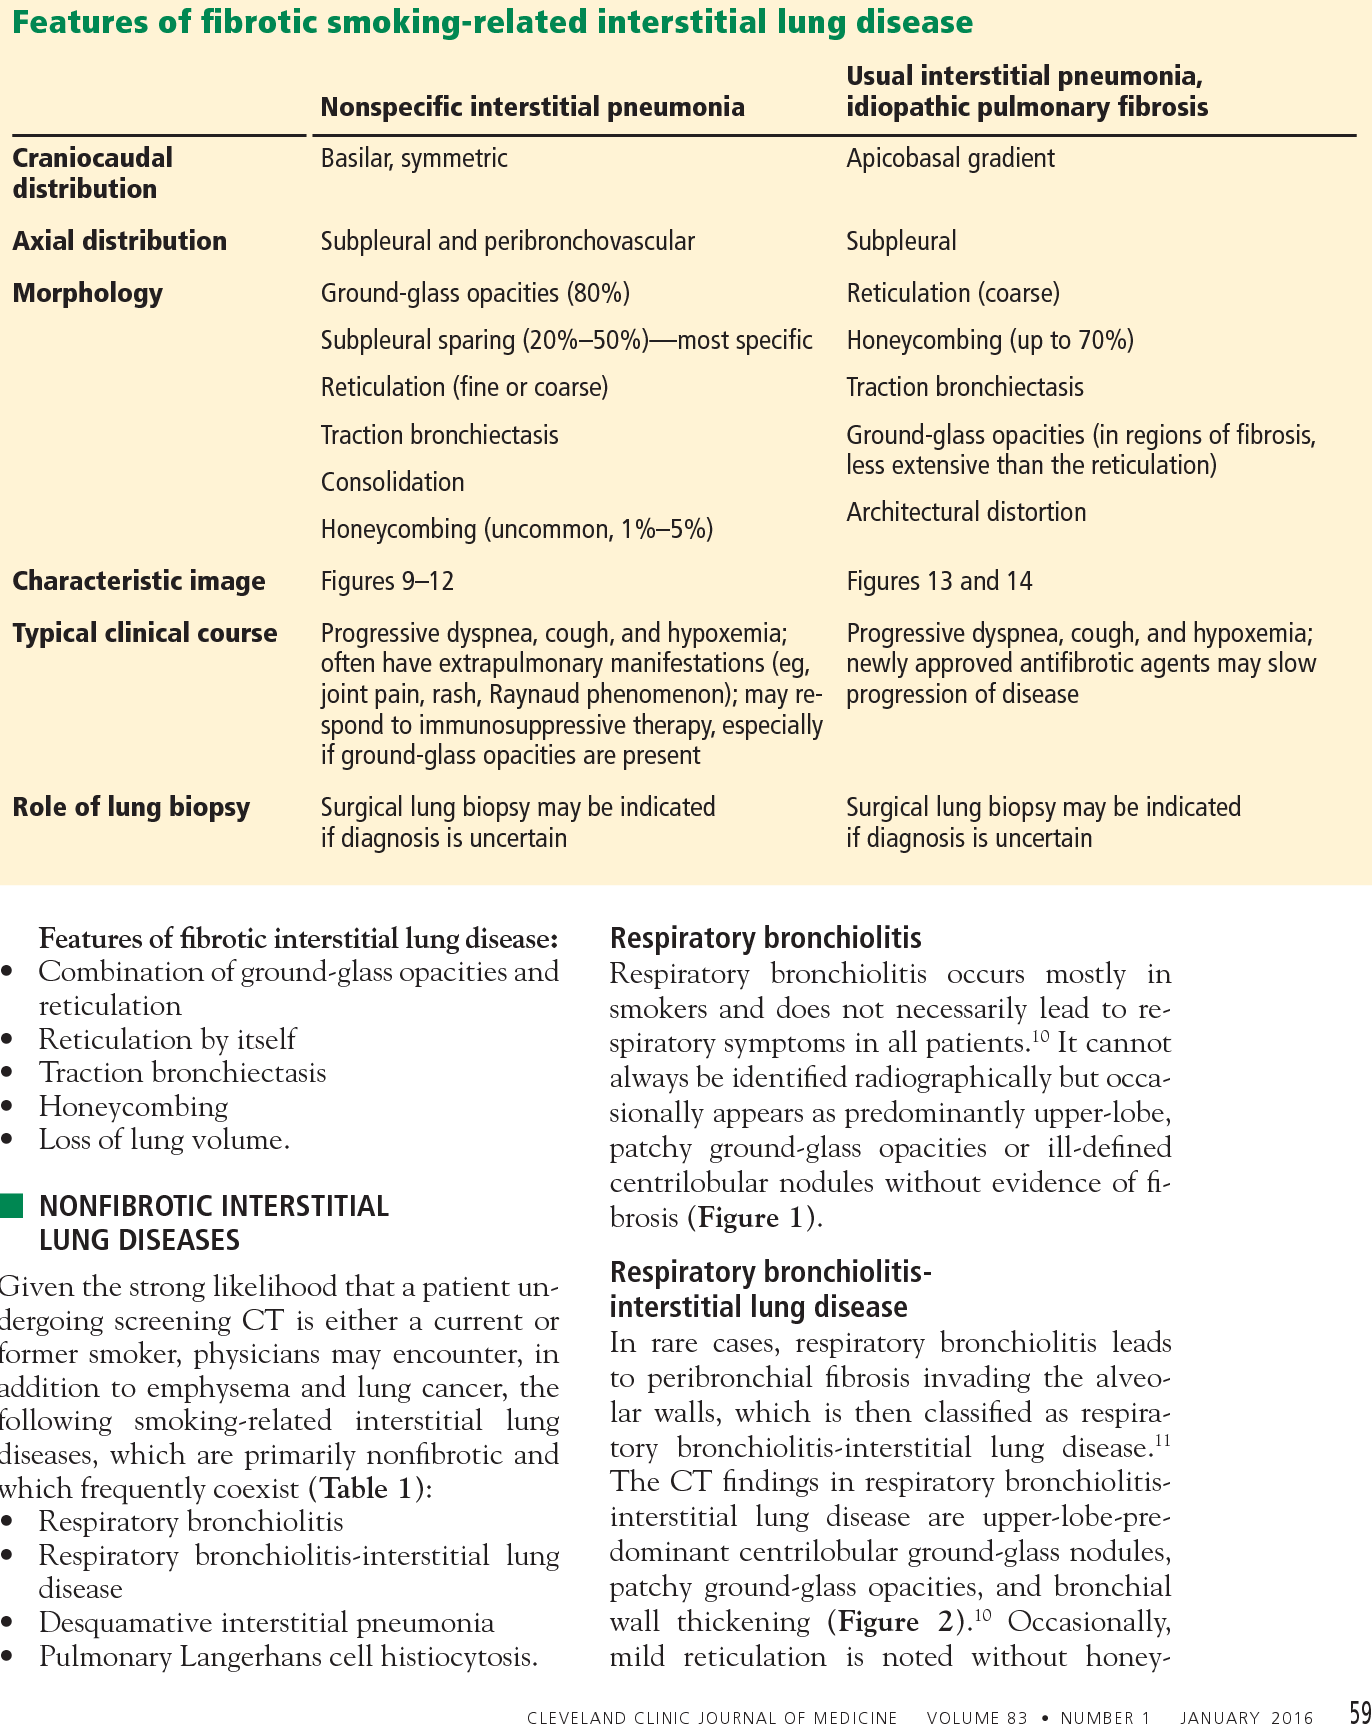 PDF] Managing interstitial lung disease detected on CT